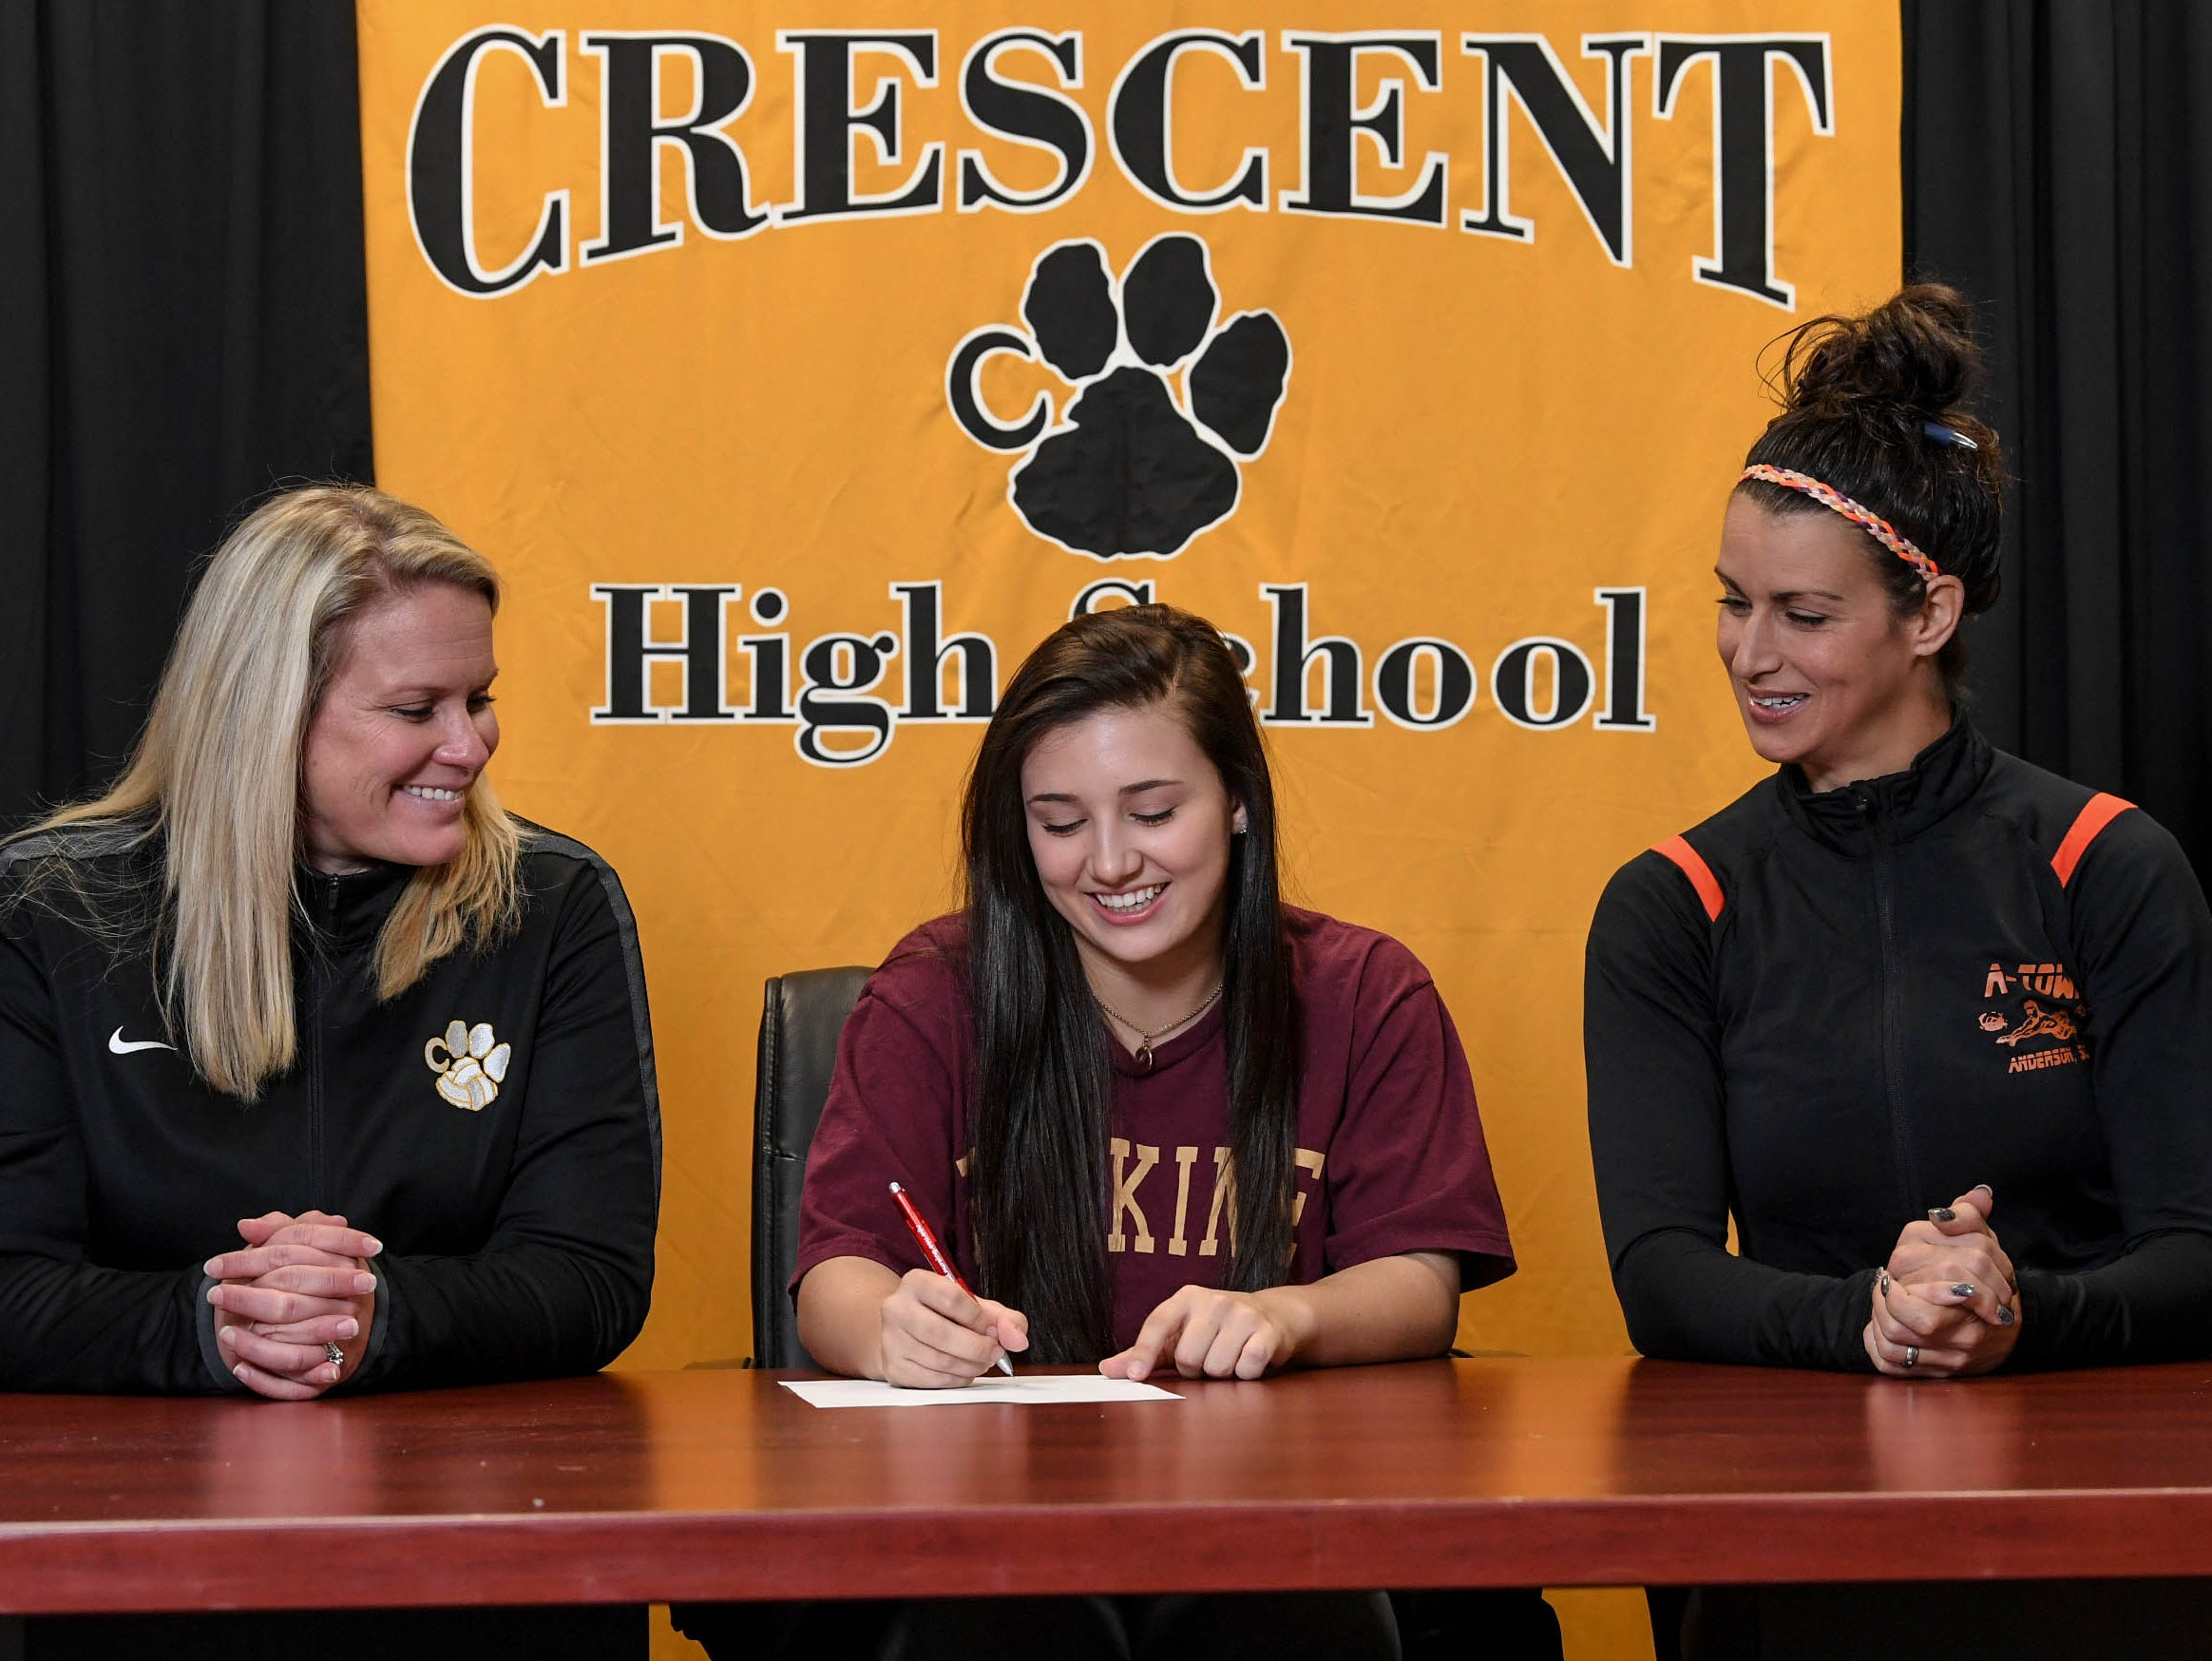 Lucy Bryant, middle, signs a National Letter of Intent to play beach volleyball at Erskine College, near her high school volleyball coach Kristen Fouts, left, and club volleyball coach Angel Freeze, right, during a National Signing Day event at Crescent High School in Iva on Wedesday.